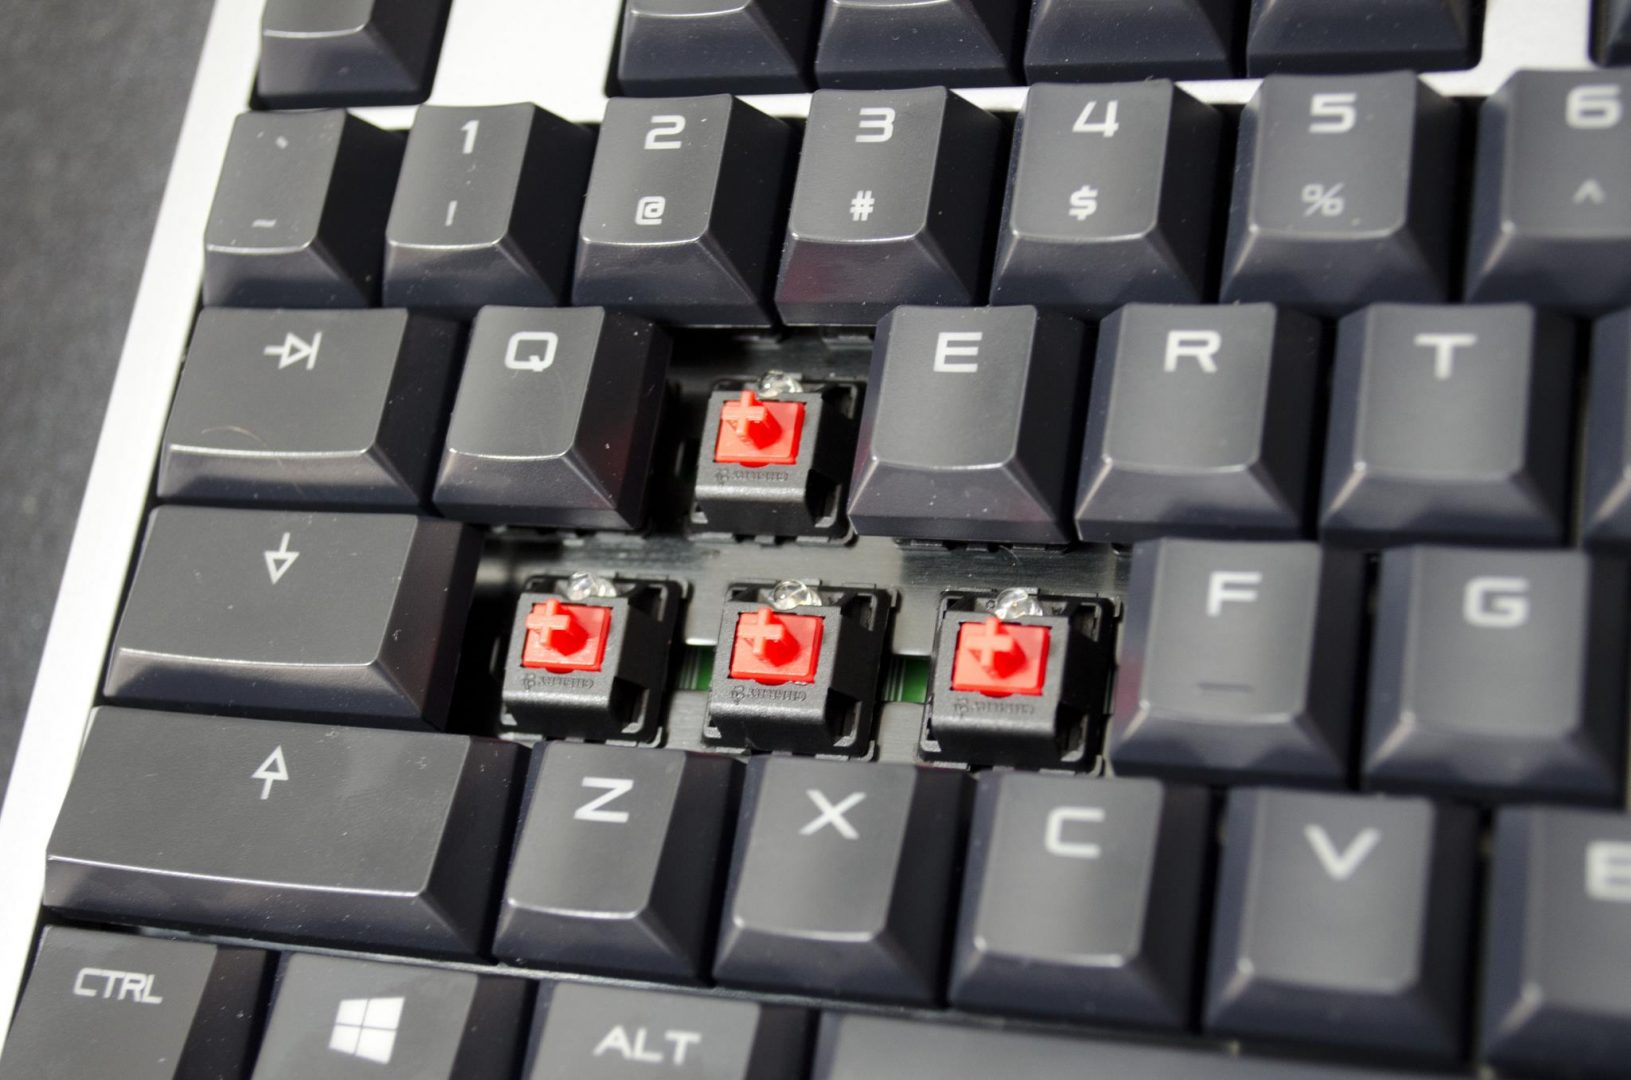 cherry mx-board 6 mechanical keyboard review_4